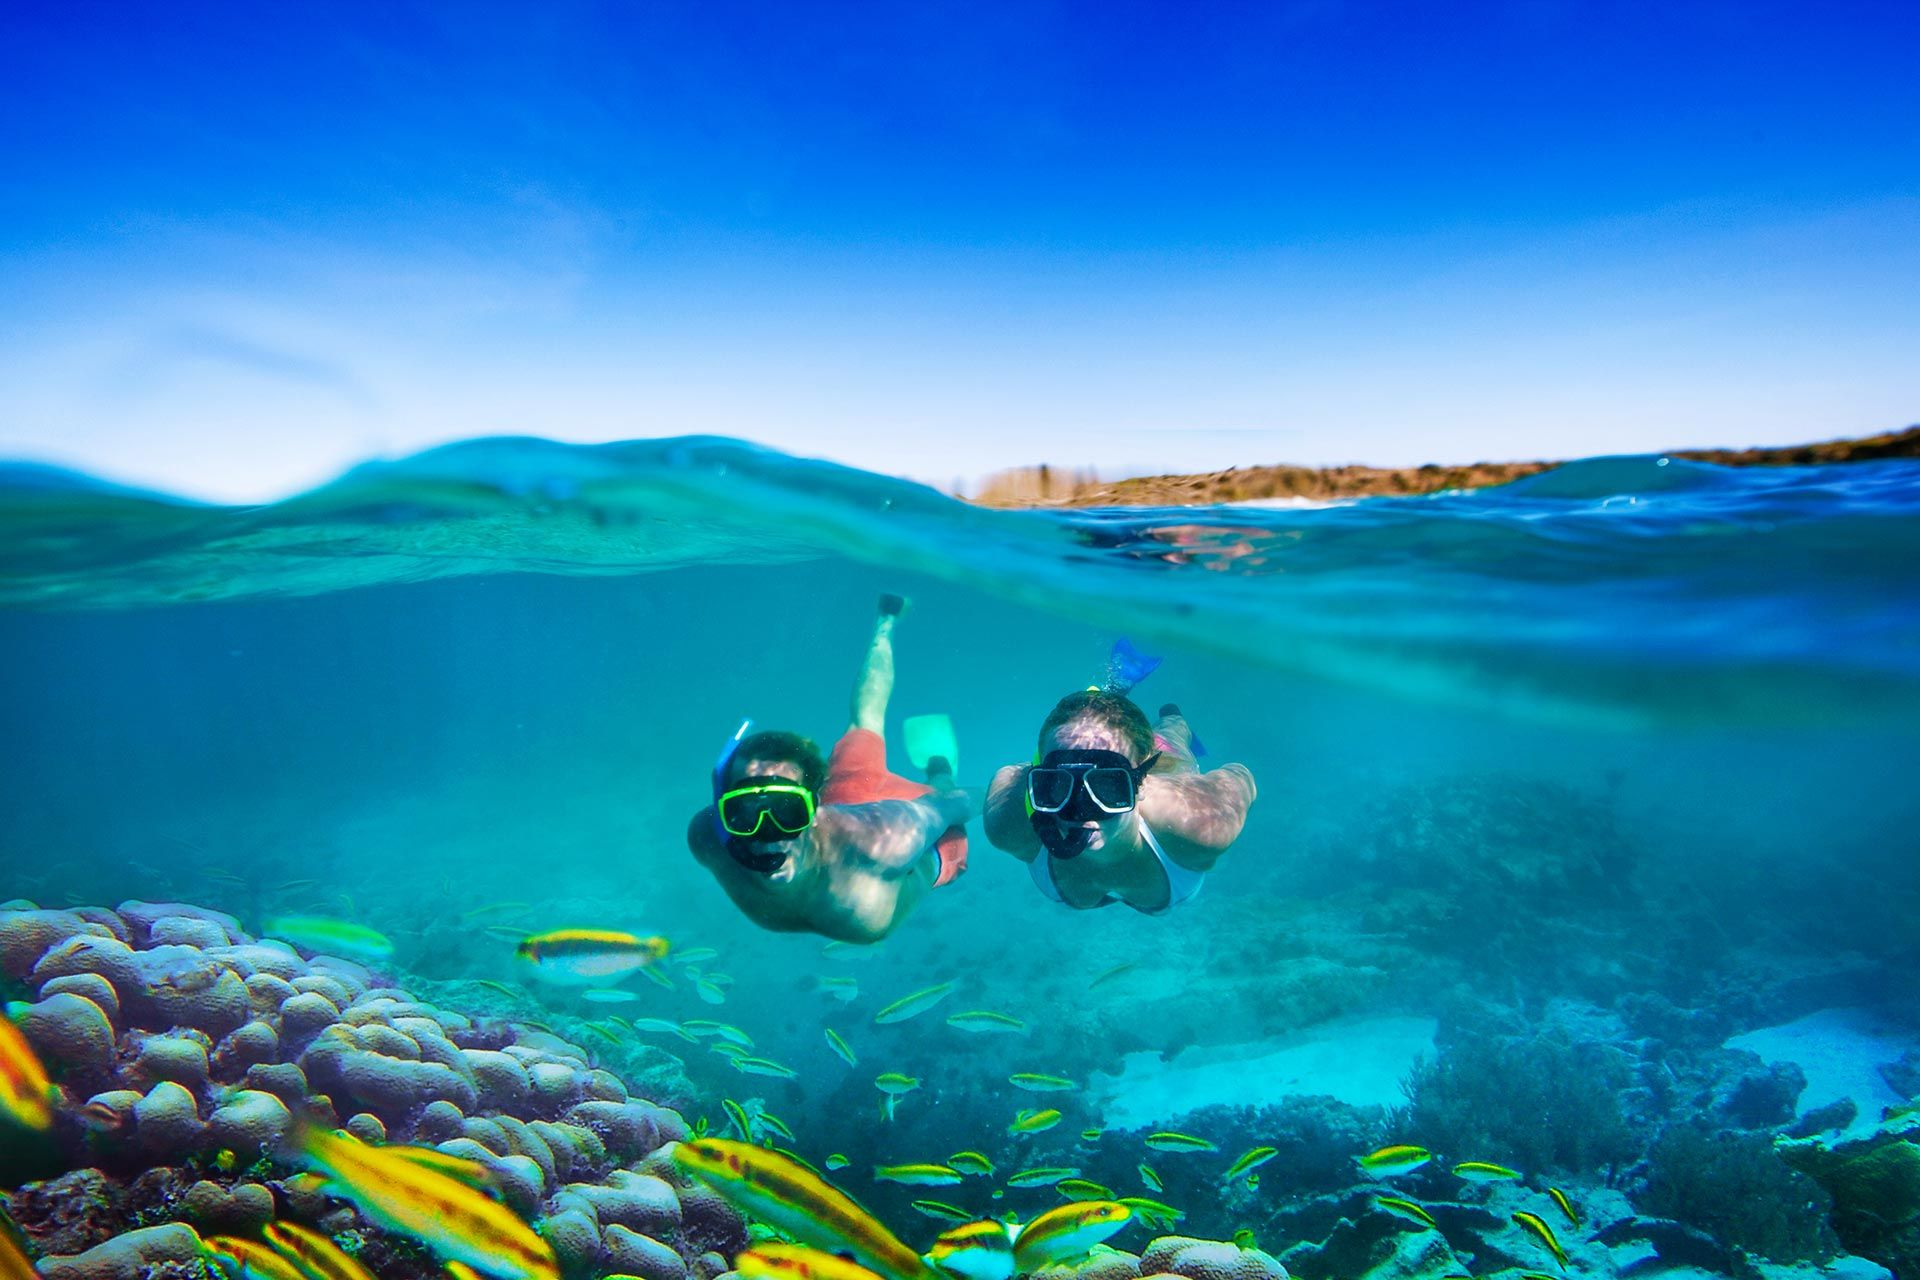 Amazing Snorkeling Tips For Beginners That Will Make You Look Like a Pro